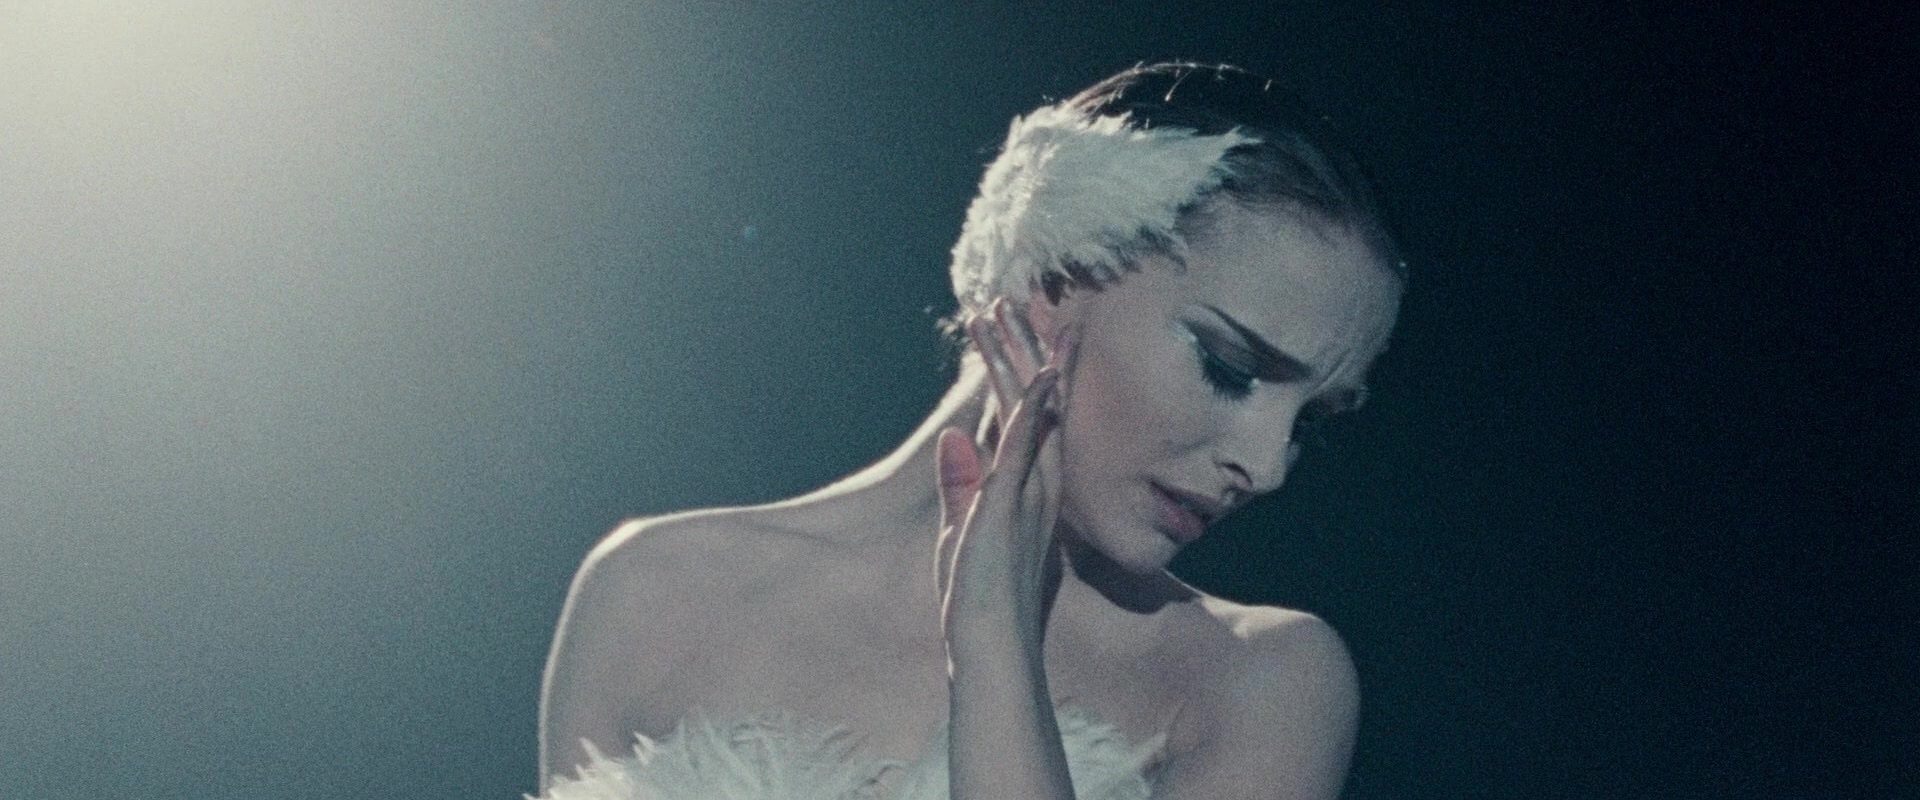 the black swan movie Black swan (2010) ads start streaming download hd share tweet pin it google+ email whatsapp a ballet dancer wins the lead in swan lake and is perfect for the role of the delicate white swan - princess odette - but slowly loses her mind as she becomes more and more like odile.